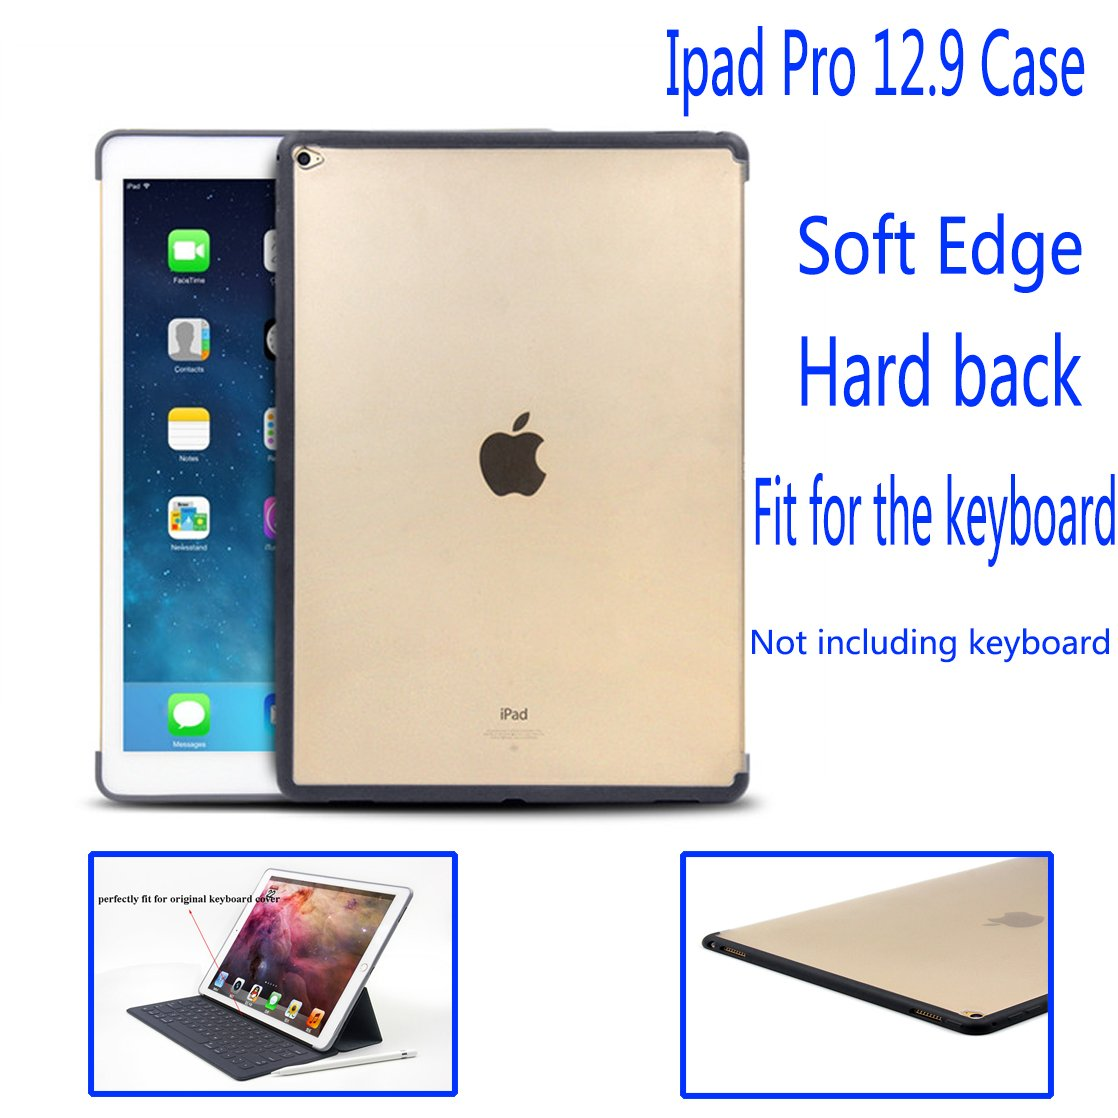 Millimeter Ipad Pro Case (12 Inch) Slim Fit Protective Shell Perfect Match With Smart Keyboard Soft TPU Bumper PC Back Cover For Ipad Pro 12.9'' A1584(2015 Release without Smartcover Or Keyboard)Shell by Millimeter